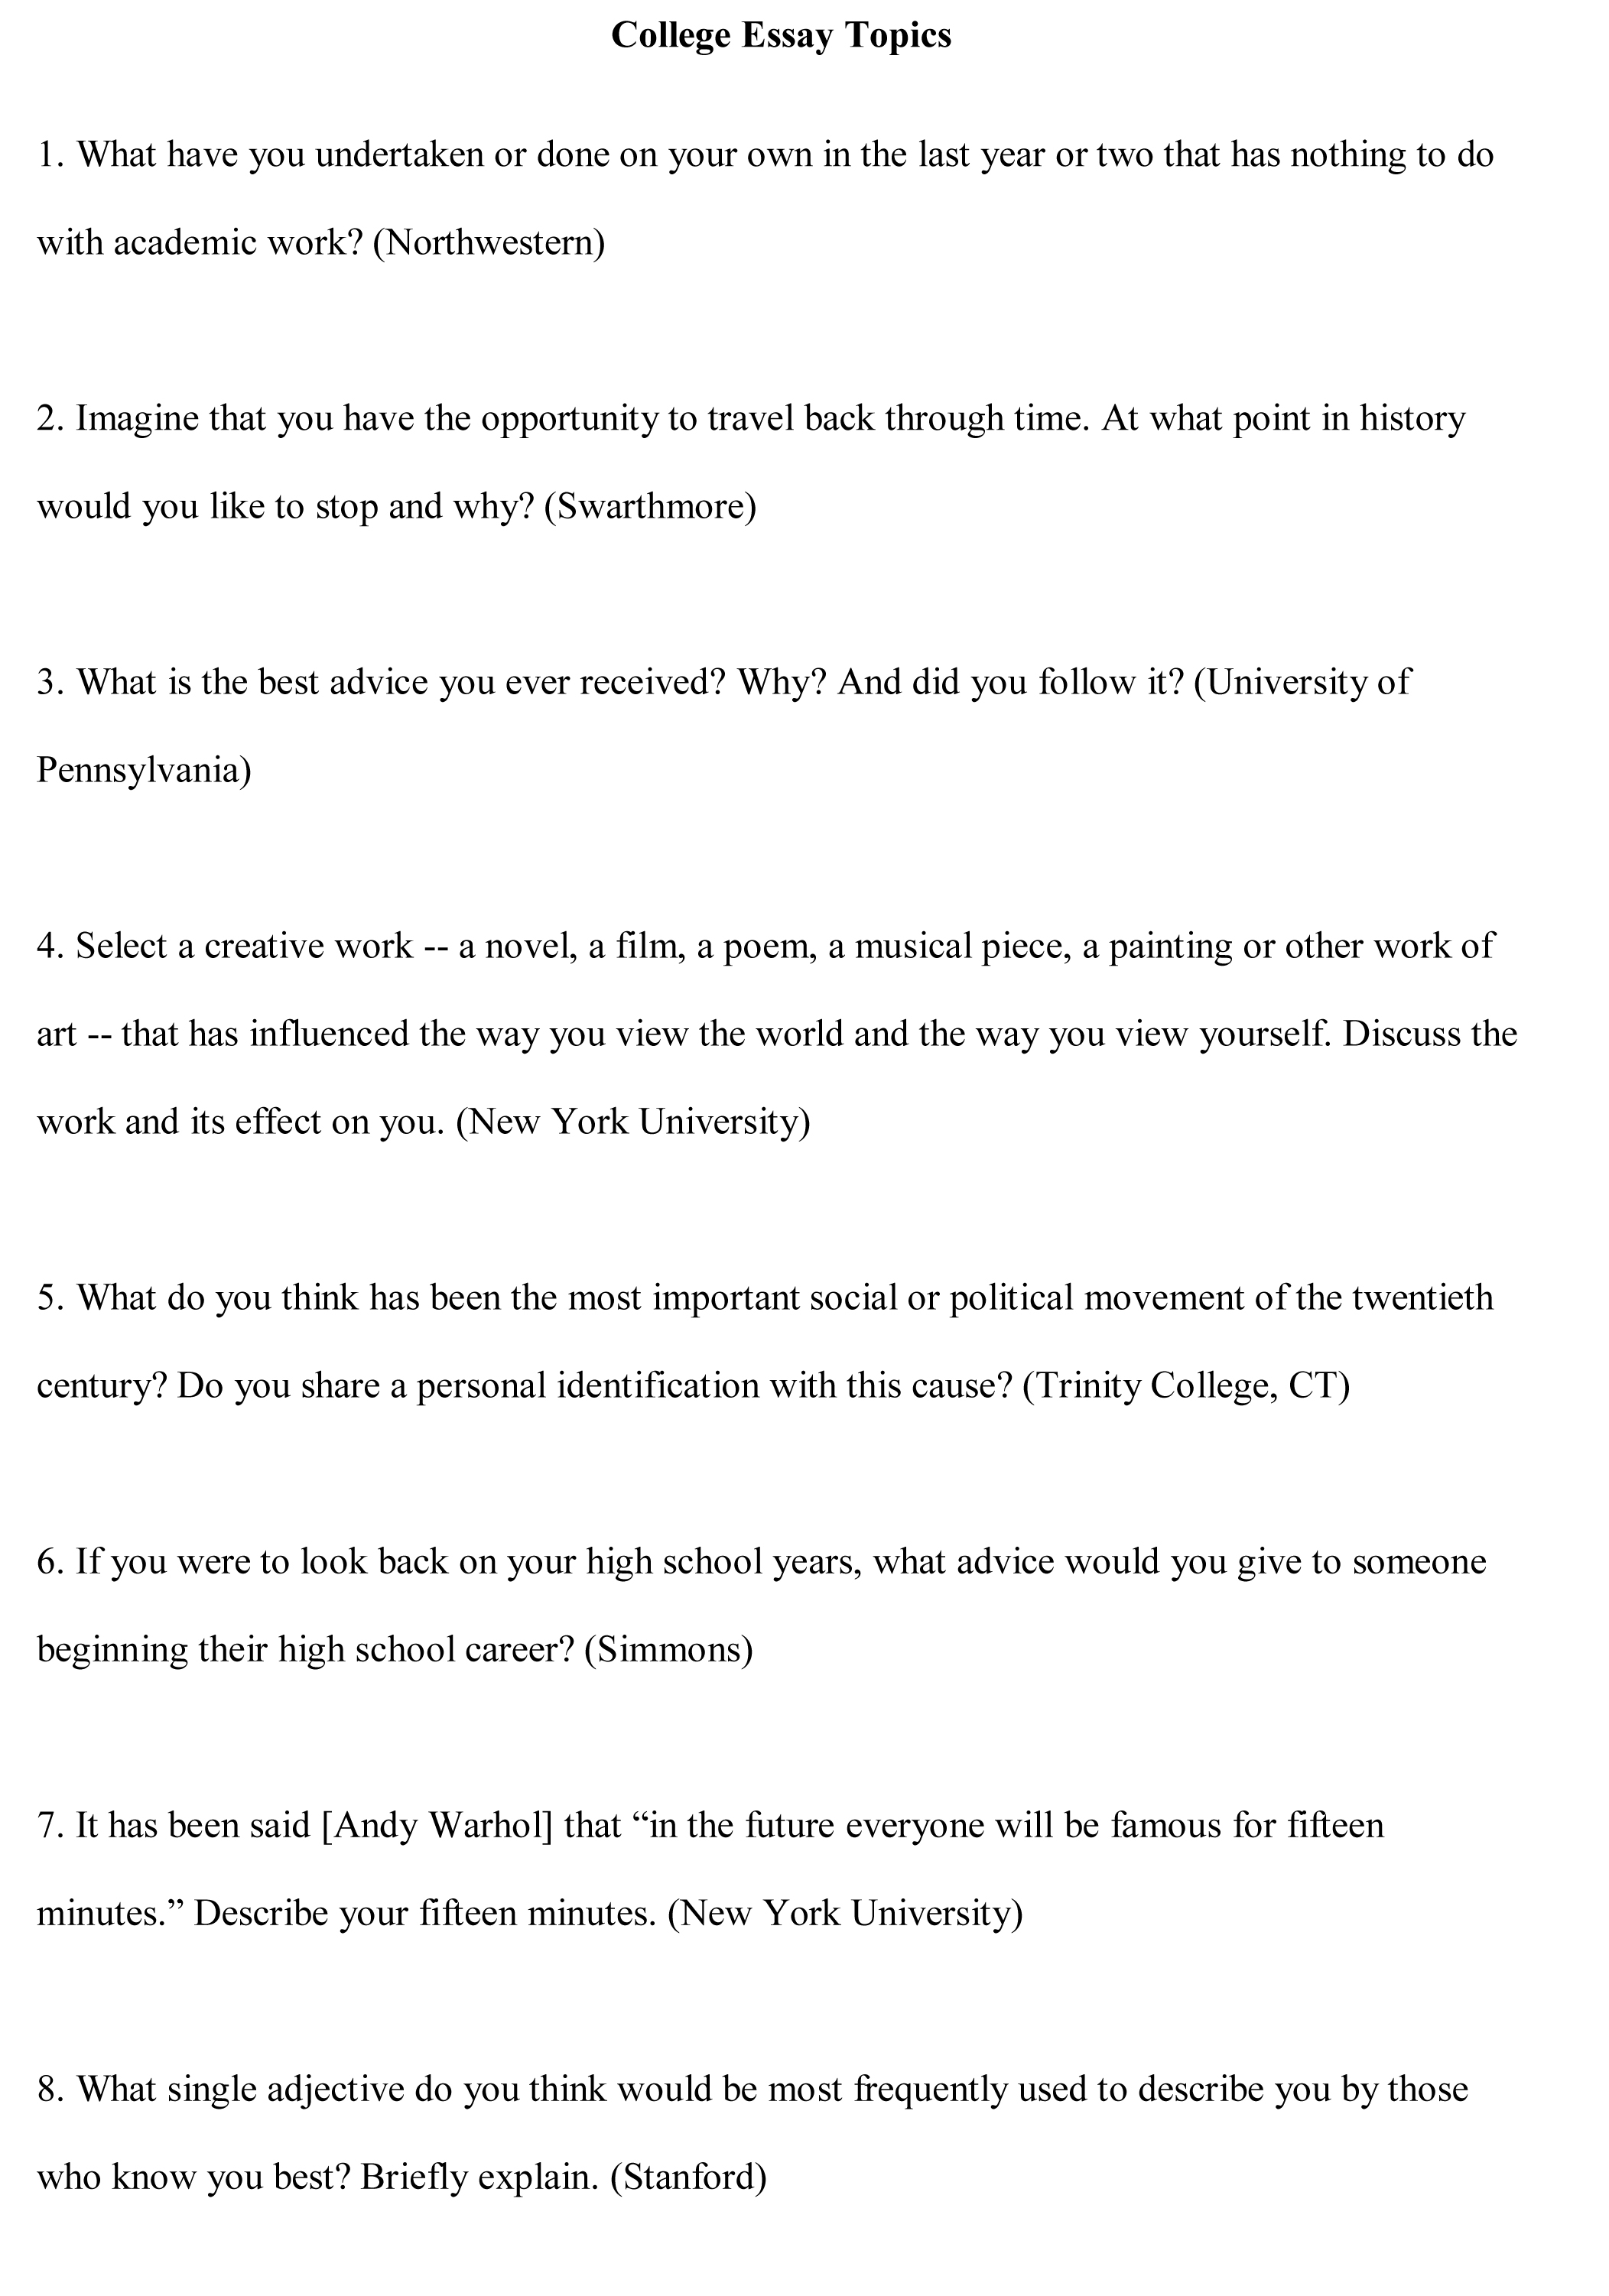 002 Topics To Write About For College Essay Example Free Stirring Essays Application Full